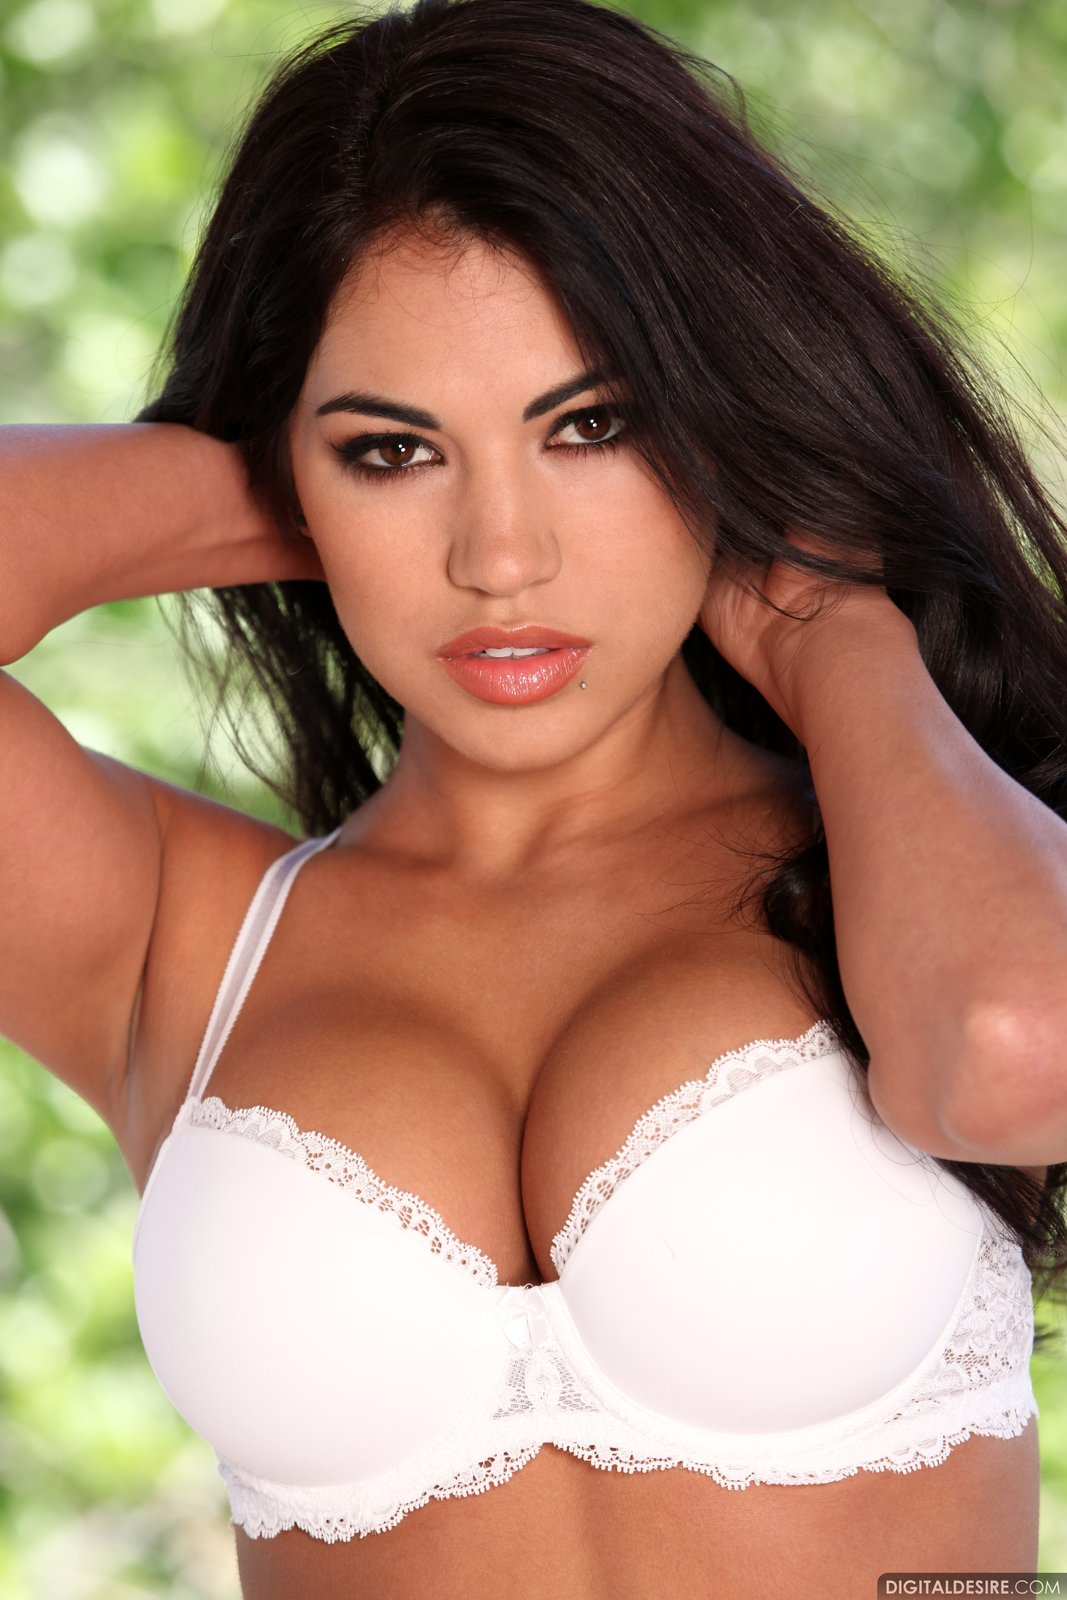 danni kalifornia - is a buxom new latina with an amazing face